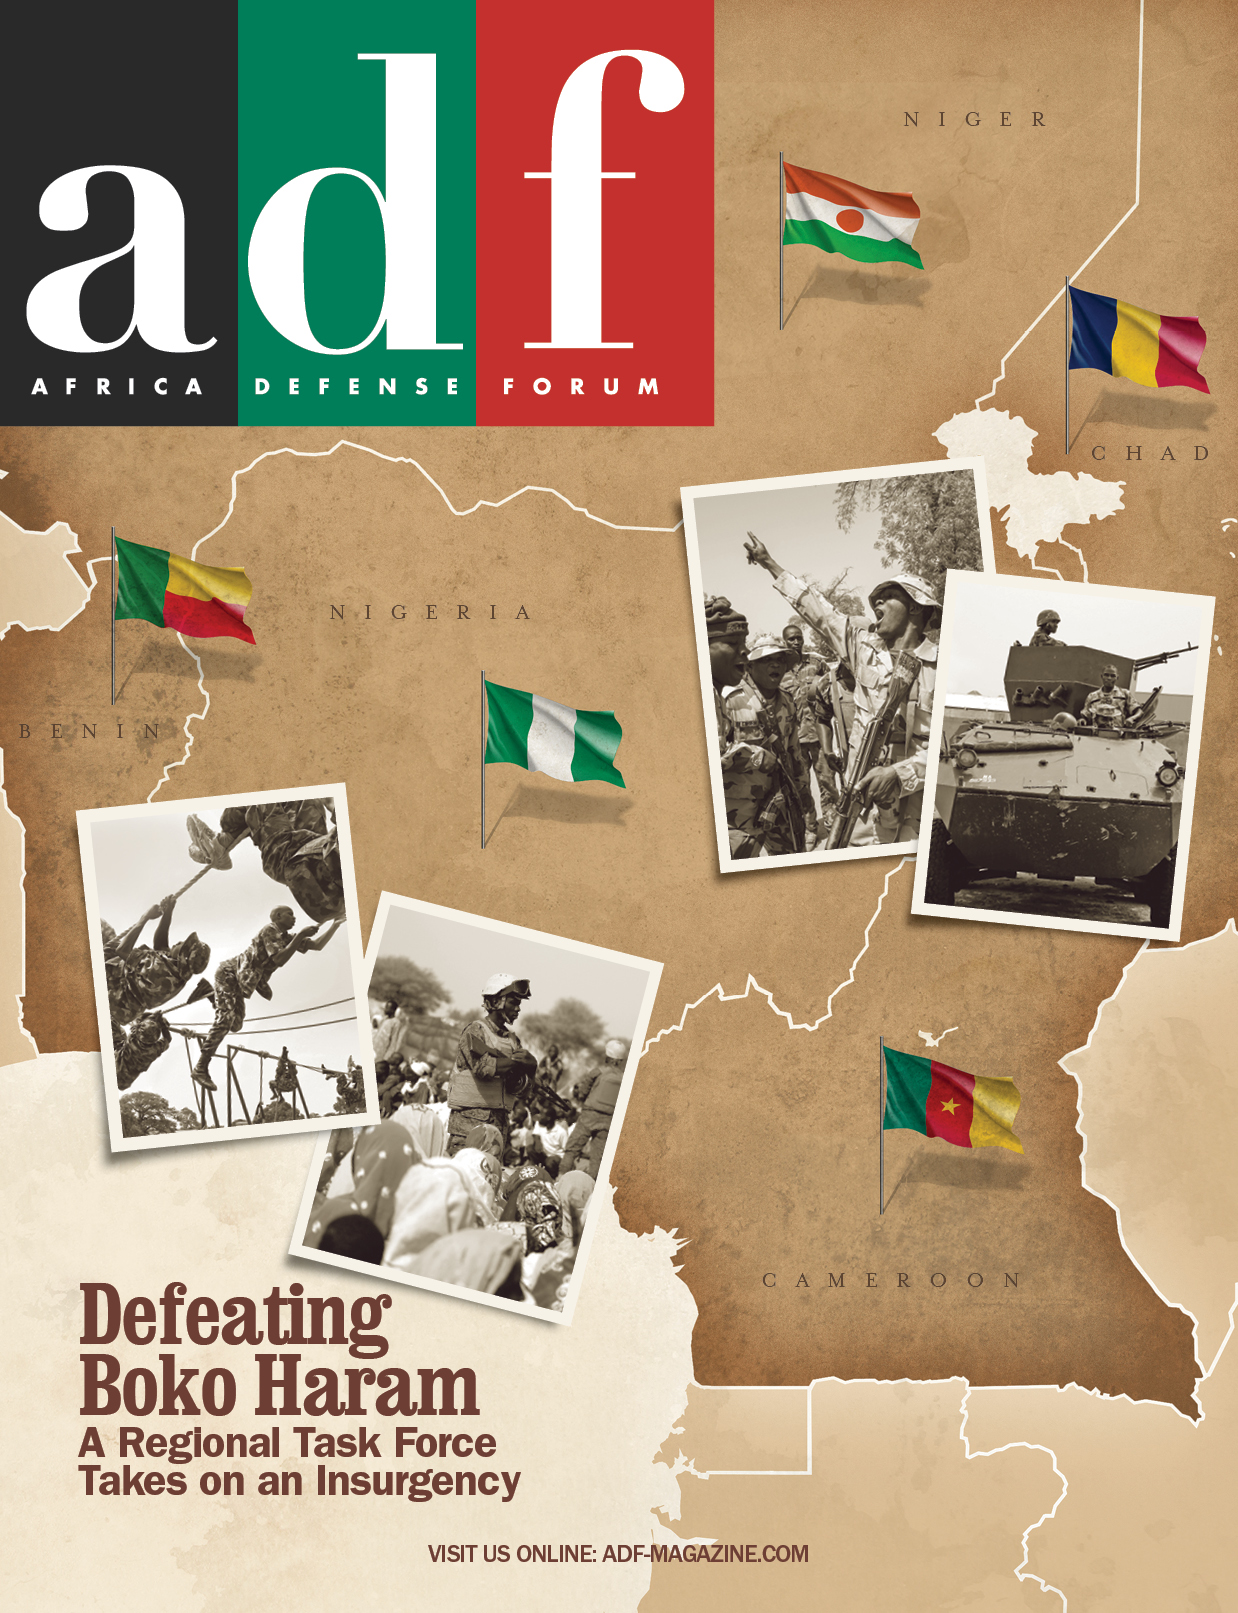 GLO.ACT featured in Africa Defense Forum Magazine